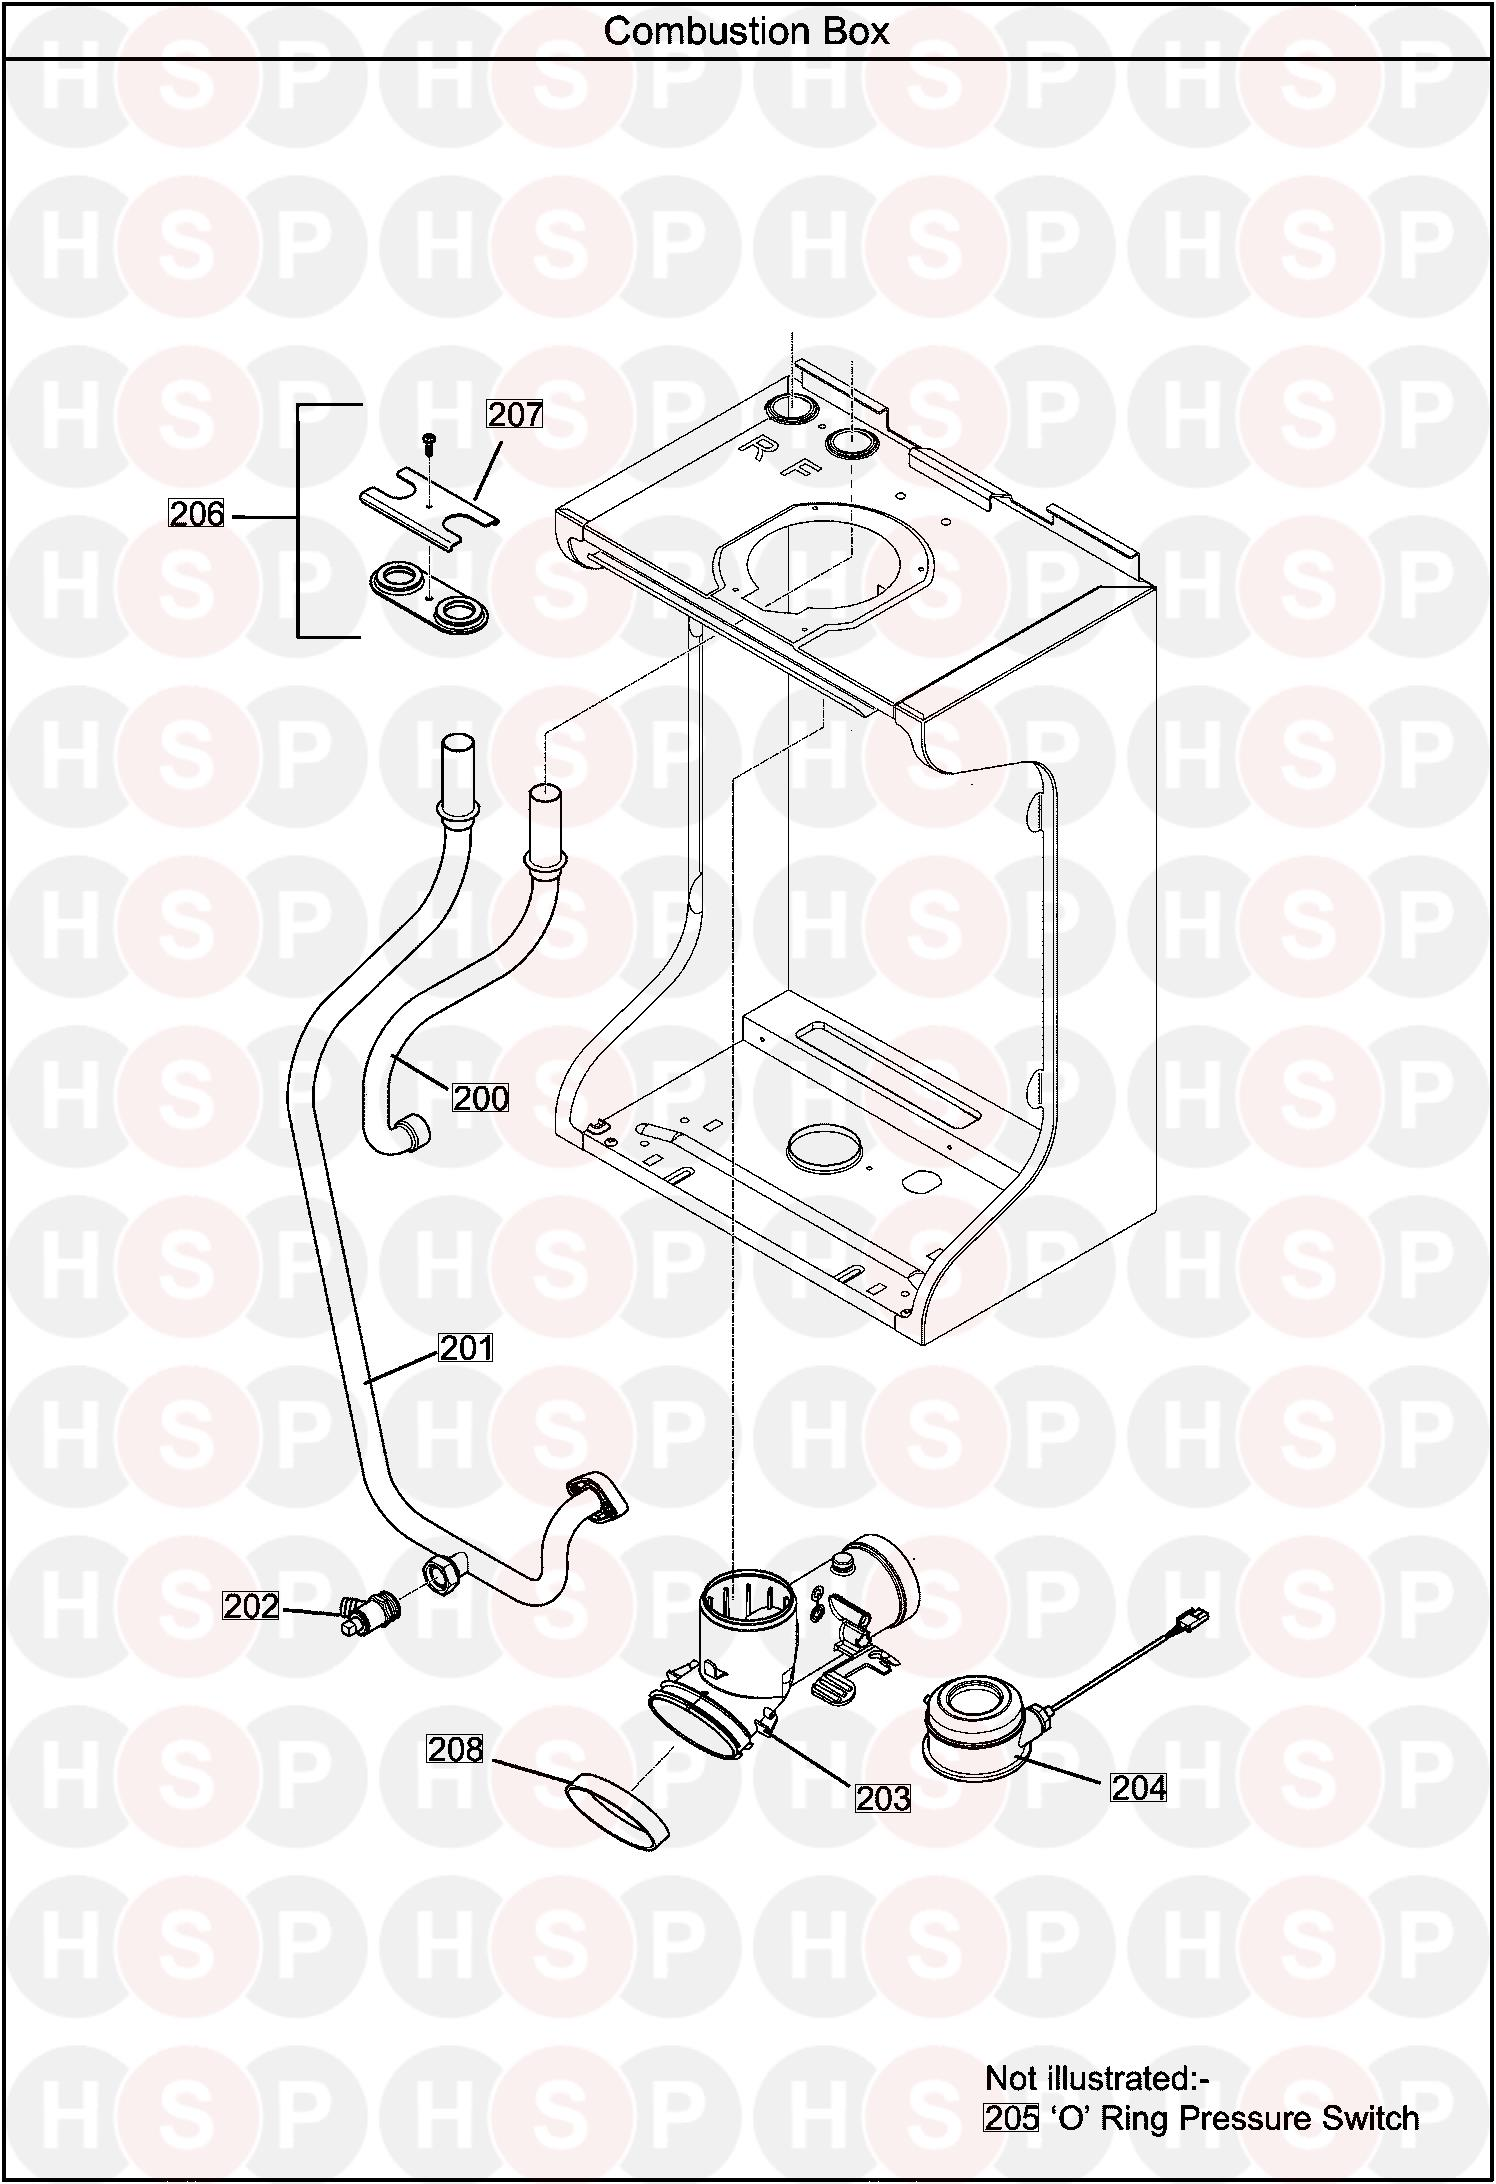 Baxi 218 Heat Only Combustion Box Diagram Heating